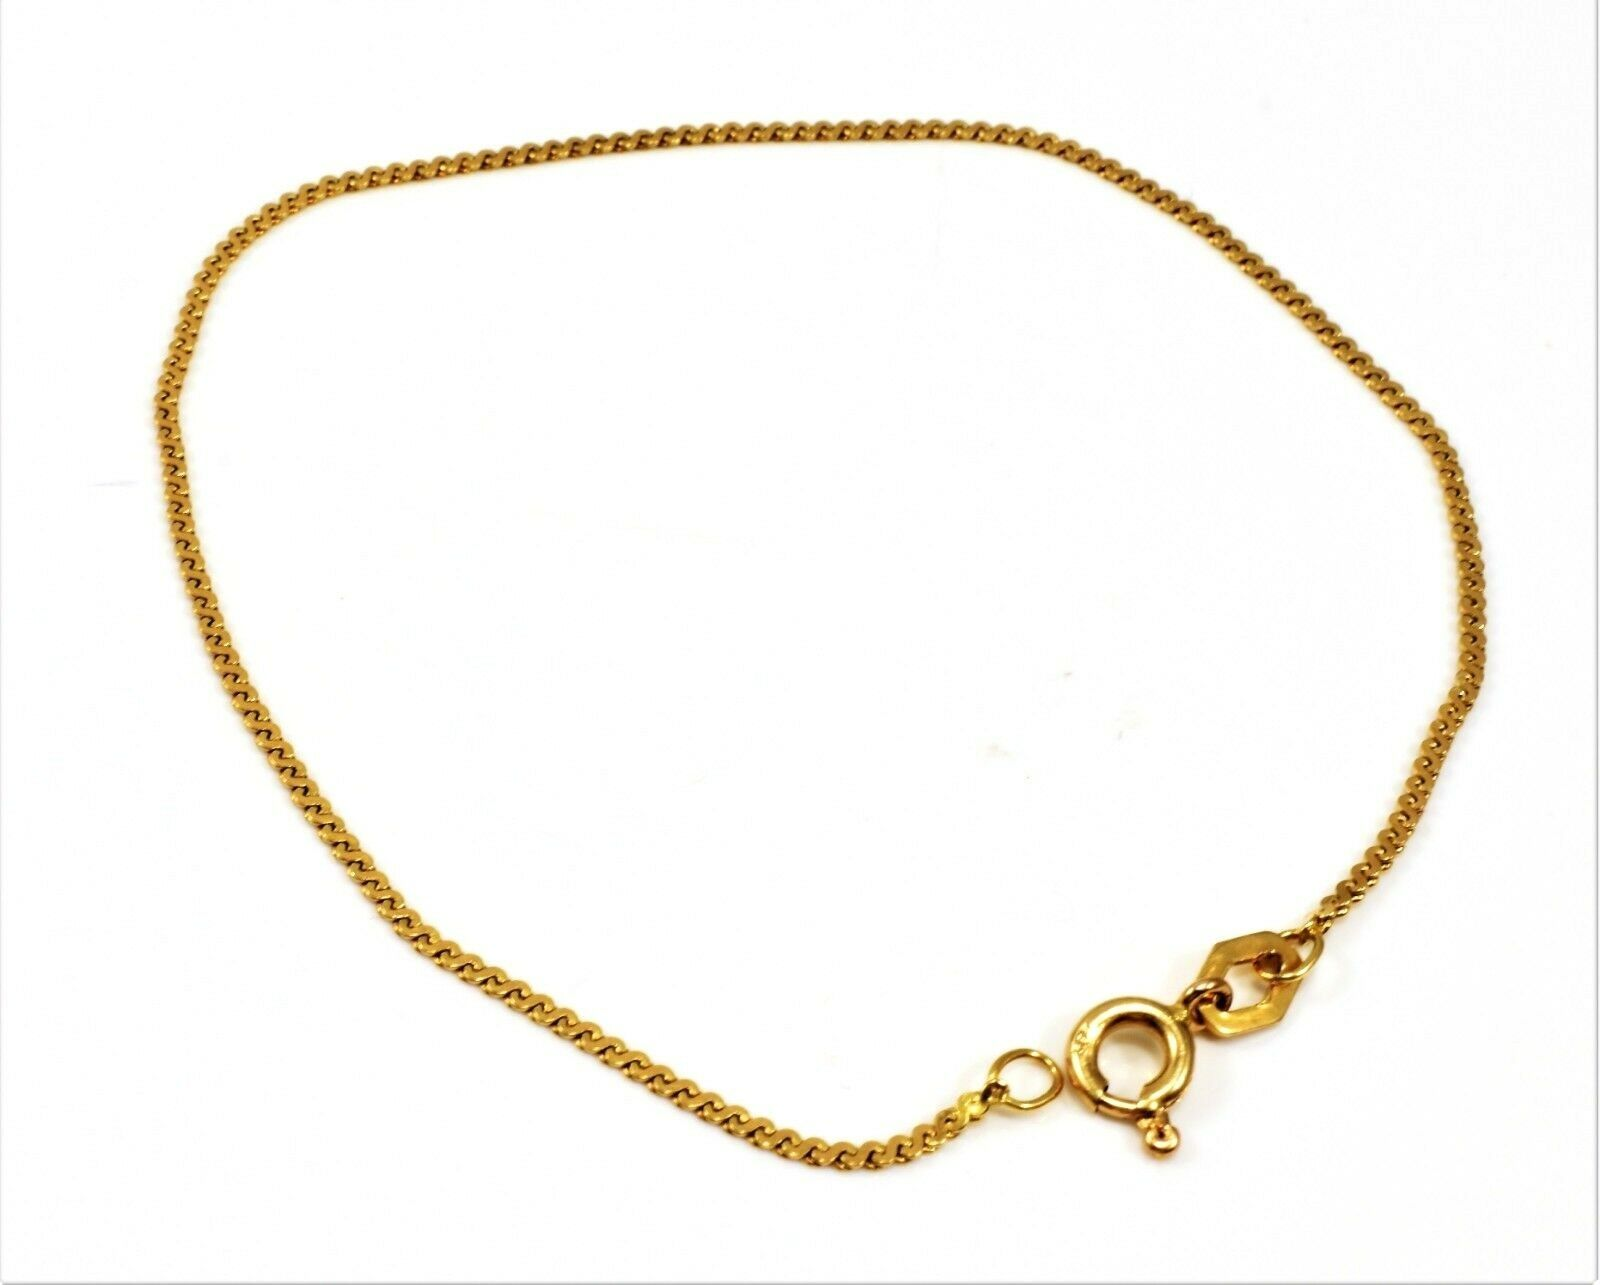 BEAUTIFUL SOLID 14K YELLOW gold DAINTY SERPENTINE CHAIN BRACELET 7  LONG STAMPED